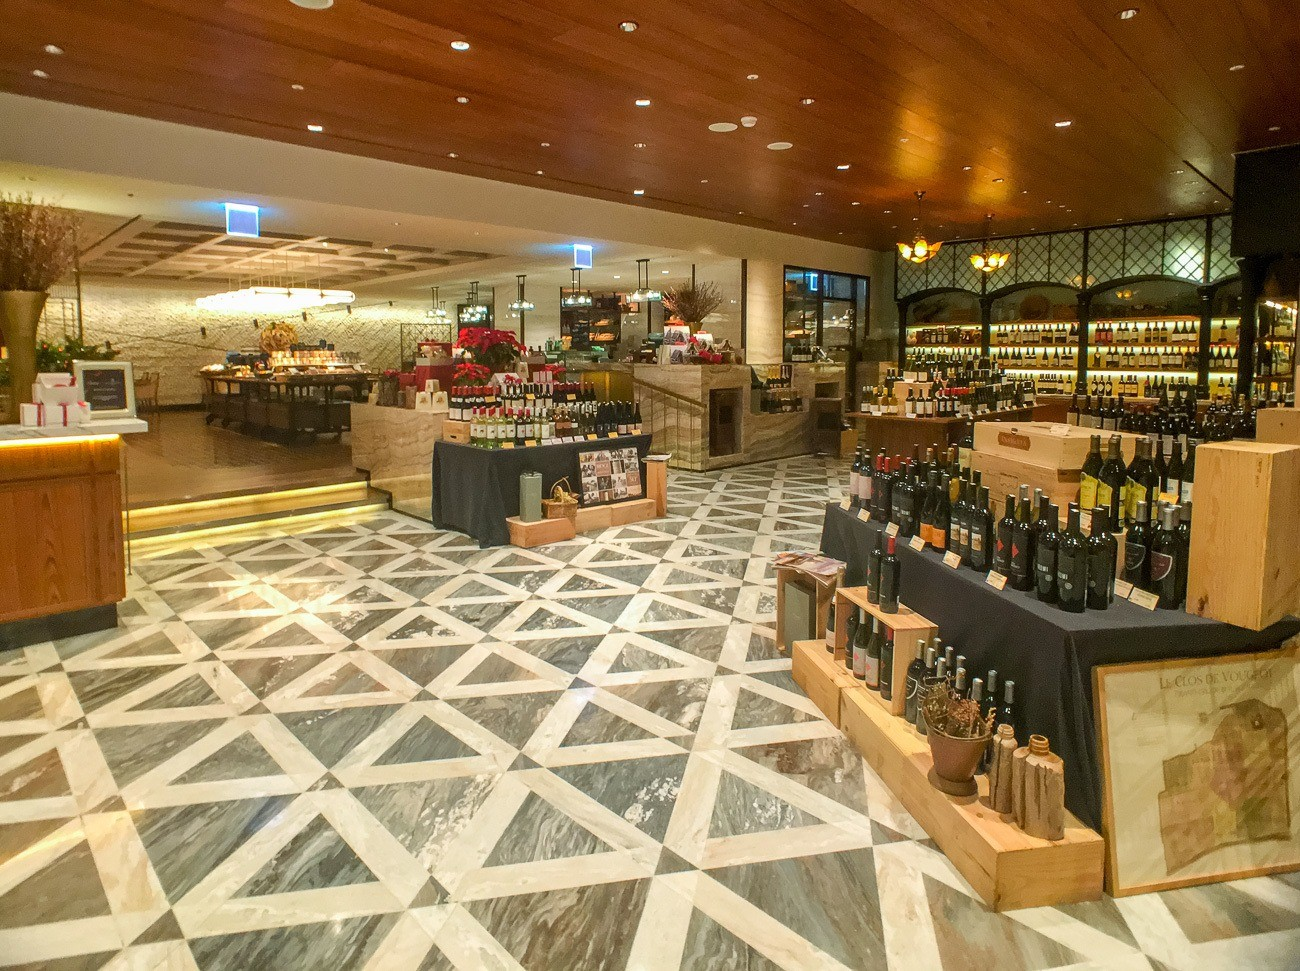 The Marketplace inside Four Seasons Hotel Seoul has a well-curated wine selection.